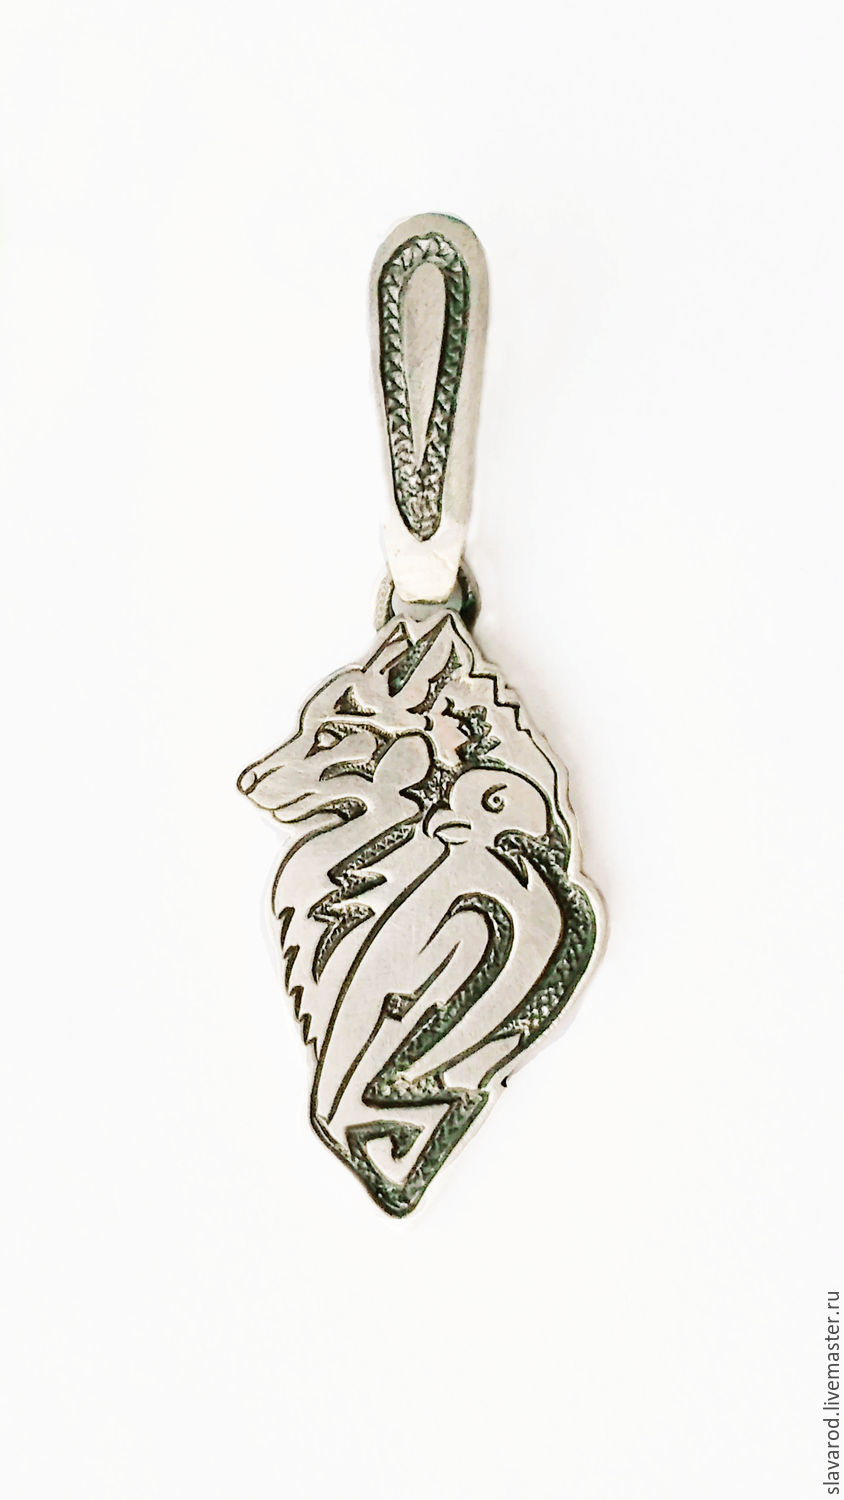 The wolf bares his teeth and growls when she feels threatened. But the wolf never attacks without the need. He takes care for his family... the Wolf chooses the path among the Woods, guided by all you